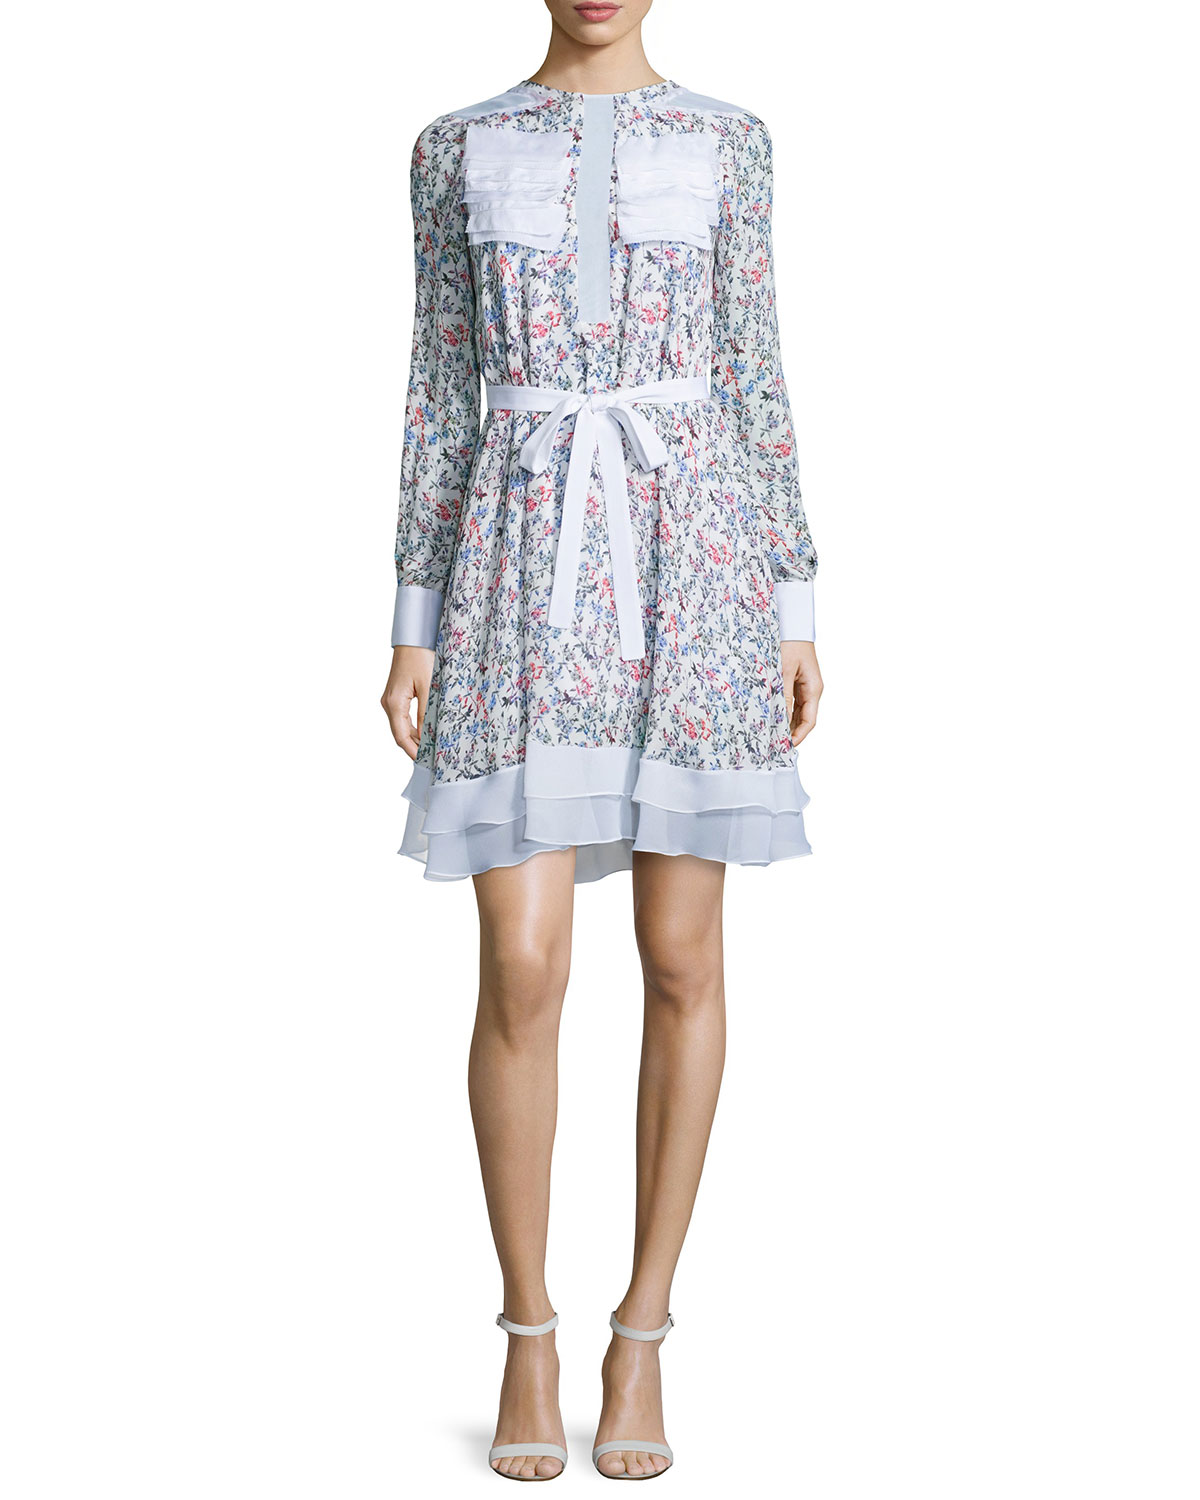 Long-Sleeve Floral-Print Dress, Small Falling Flowers